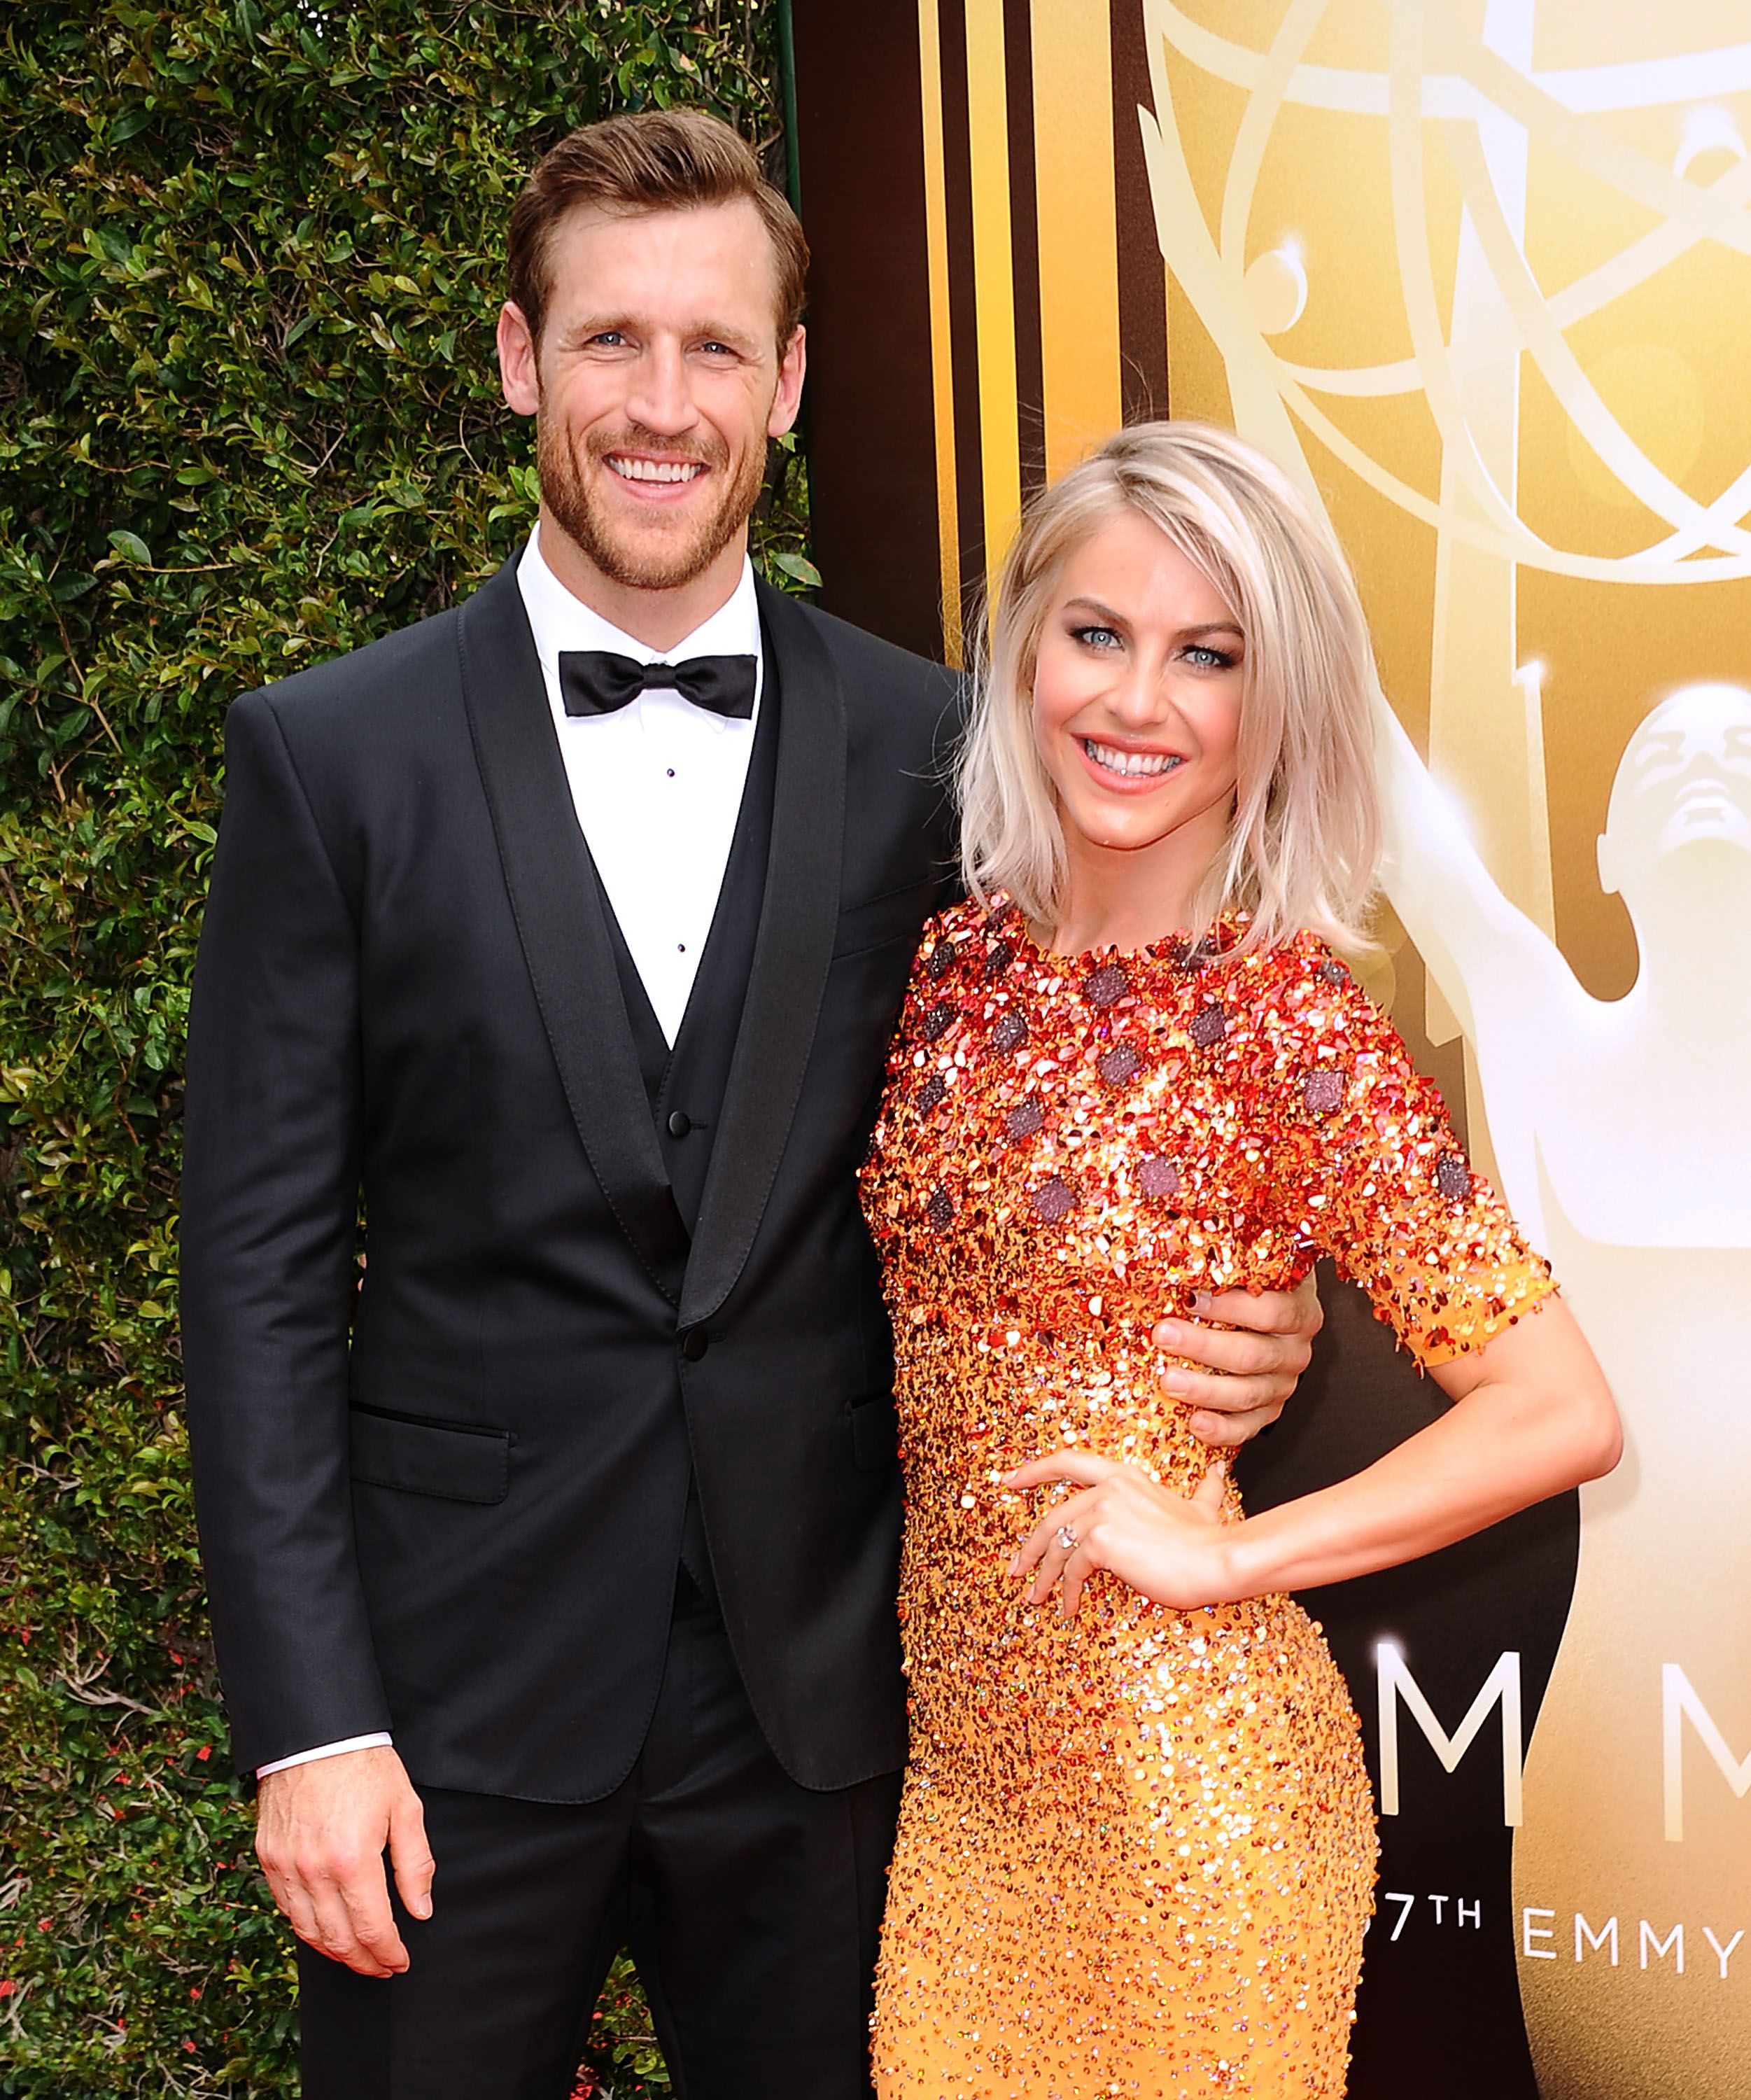 Brooks Laich and Julianne Hough at the 2015 Creative Arts Emmy Awards in 2015 in Los Angeles, California | Source: Getty Images